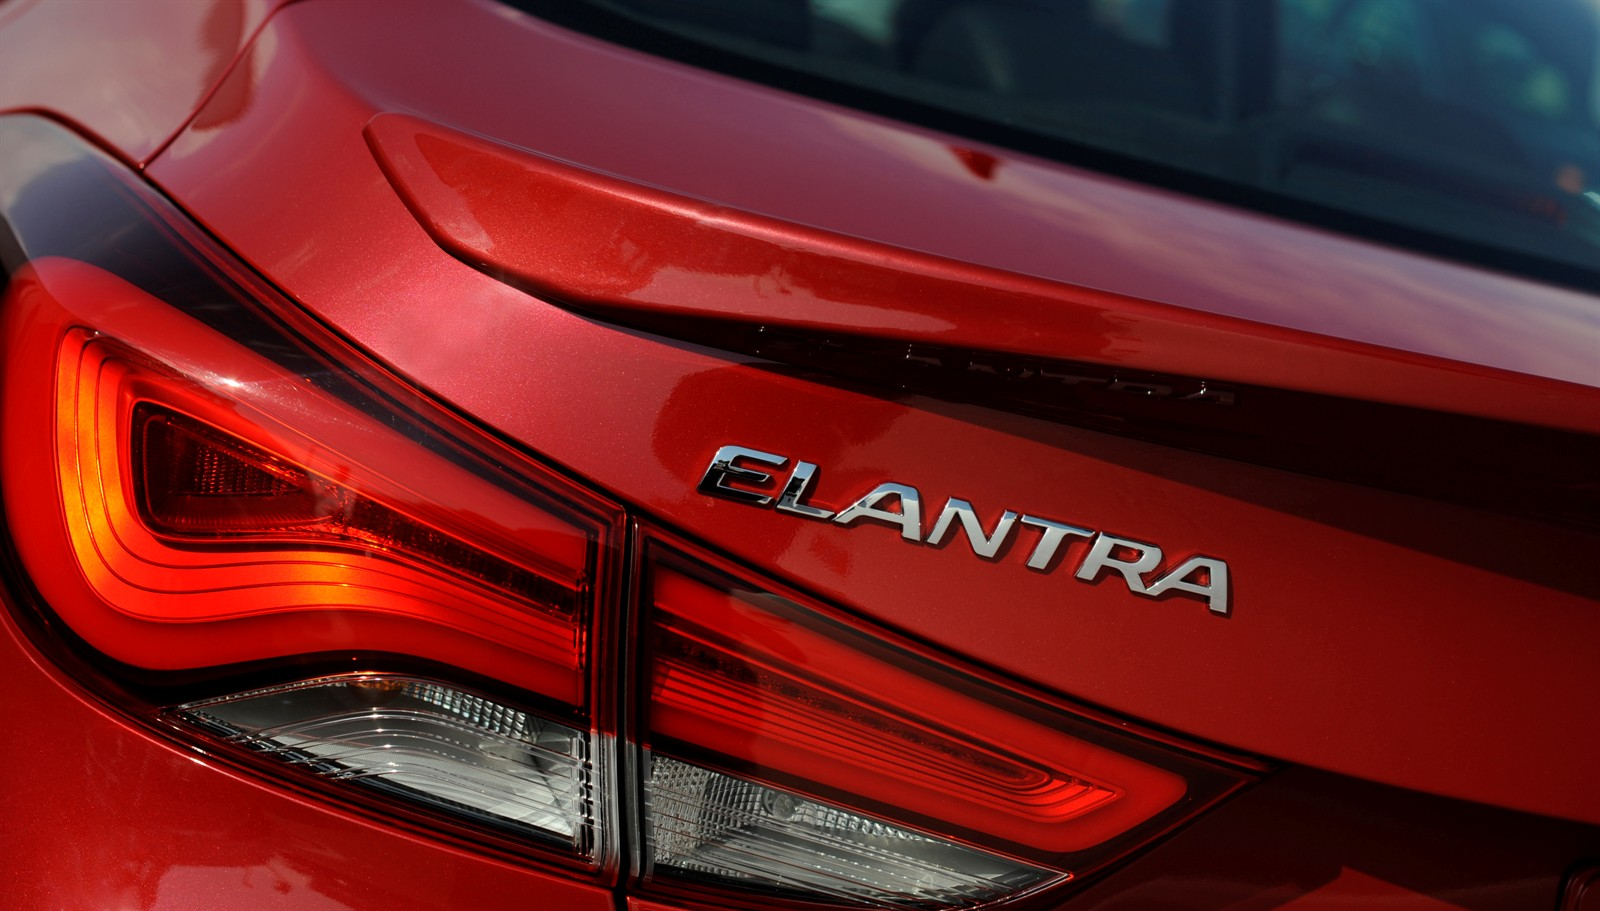 Hyundai Elantra Surpasses 10 Million Units in Global Sales